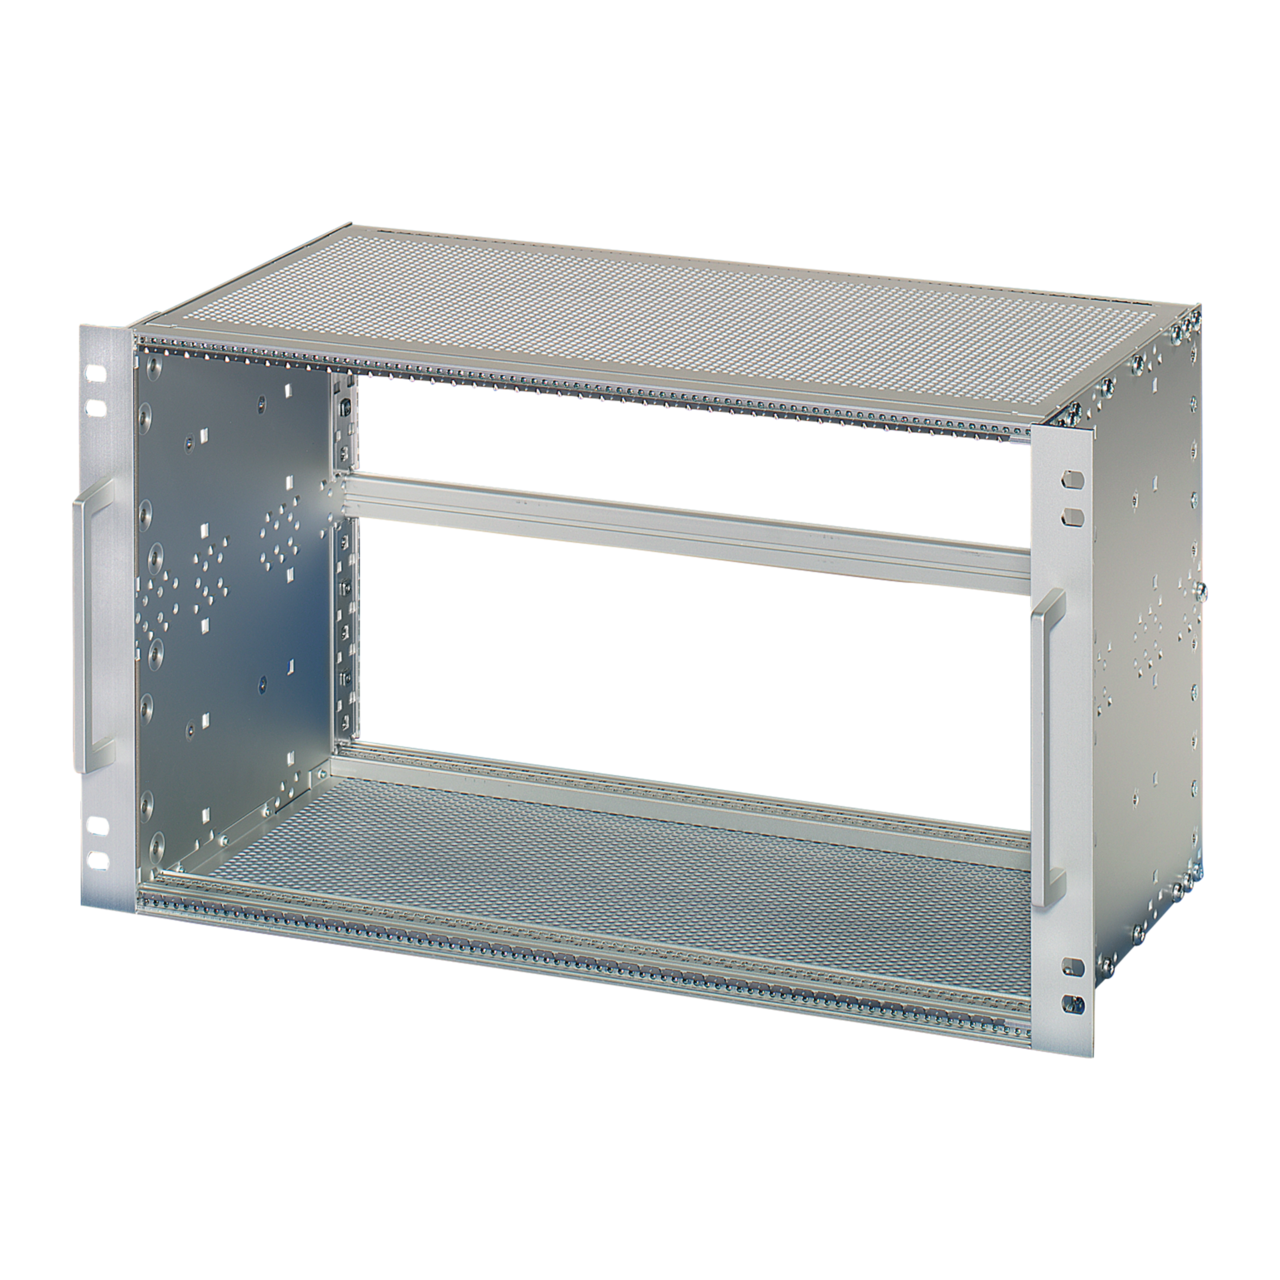 Image for EuropacPRO kit for railway applications, heavy design, shielded, EN 50155, for CompactPCI applications from Schroff - North America